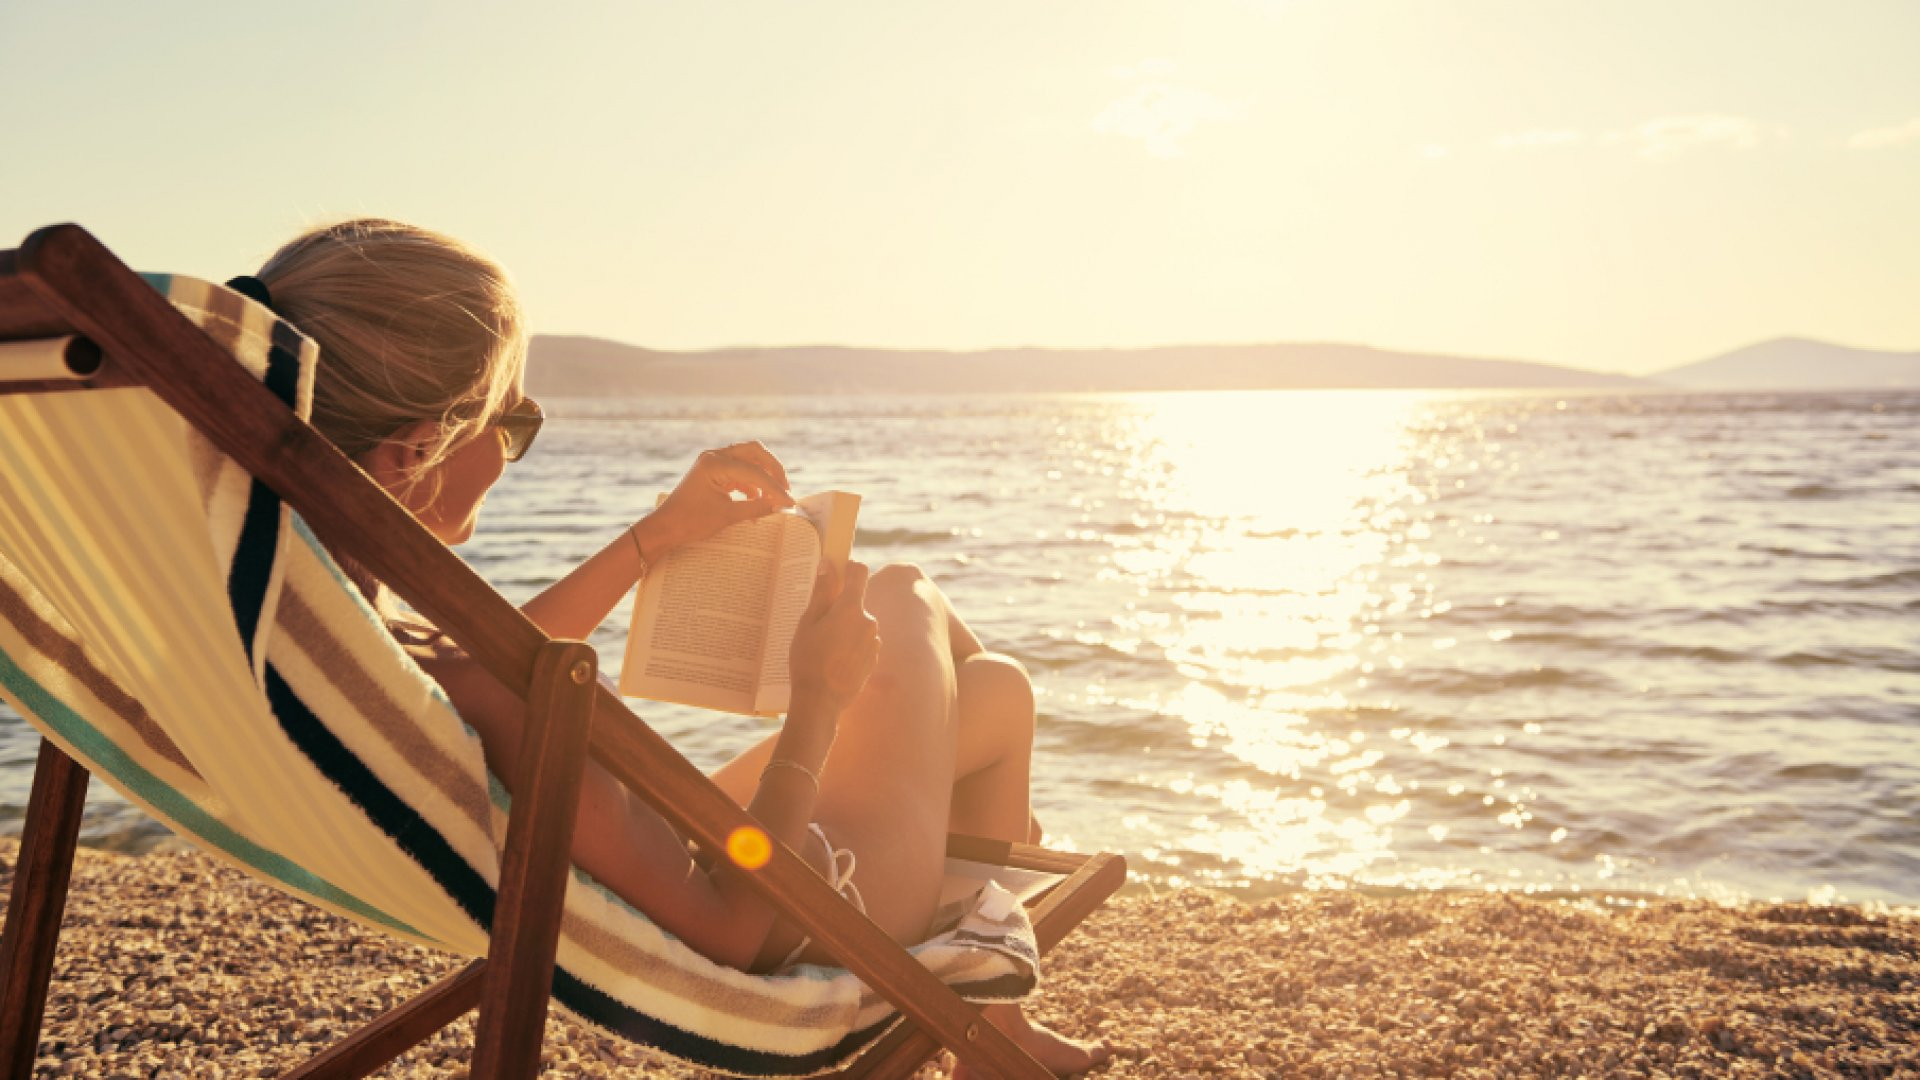 How to Take a Vacation When It's Tough to Get Away